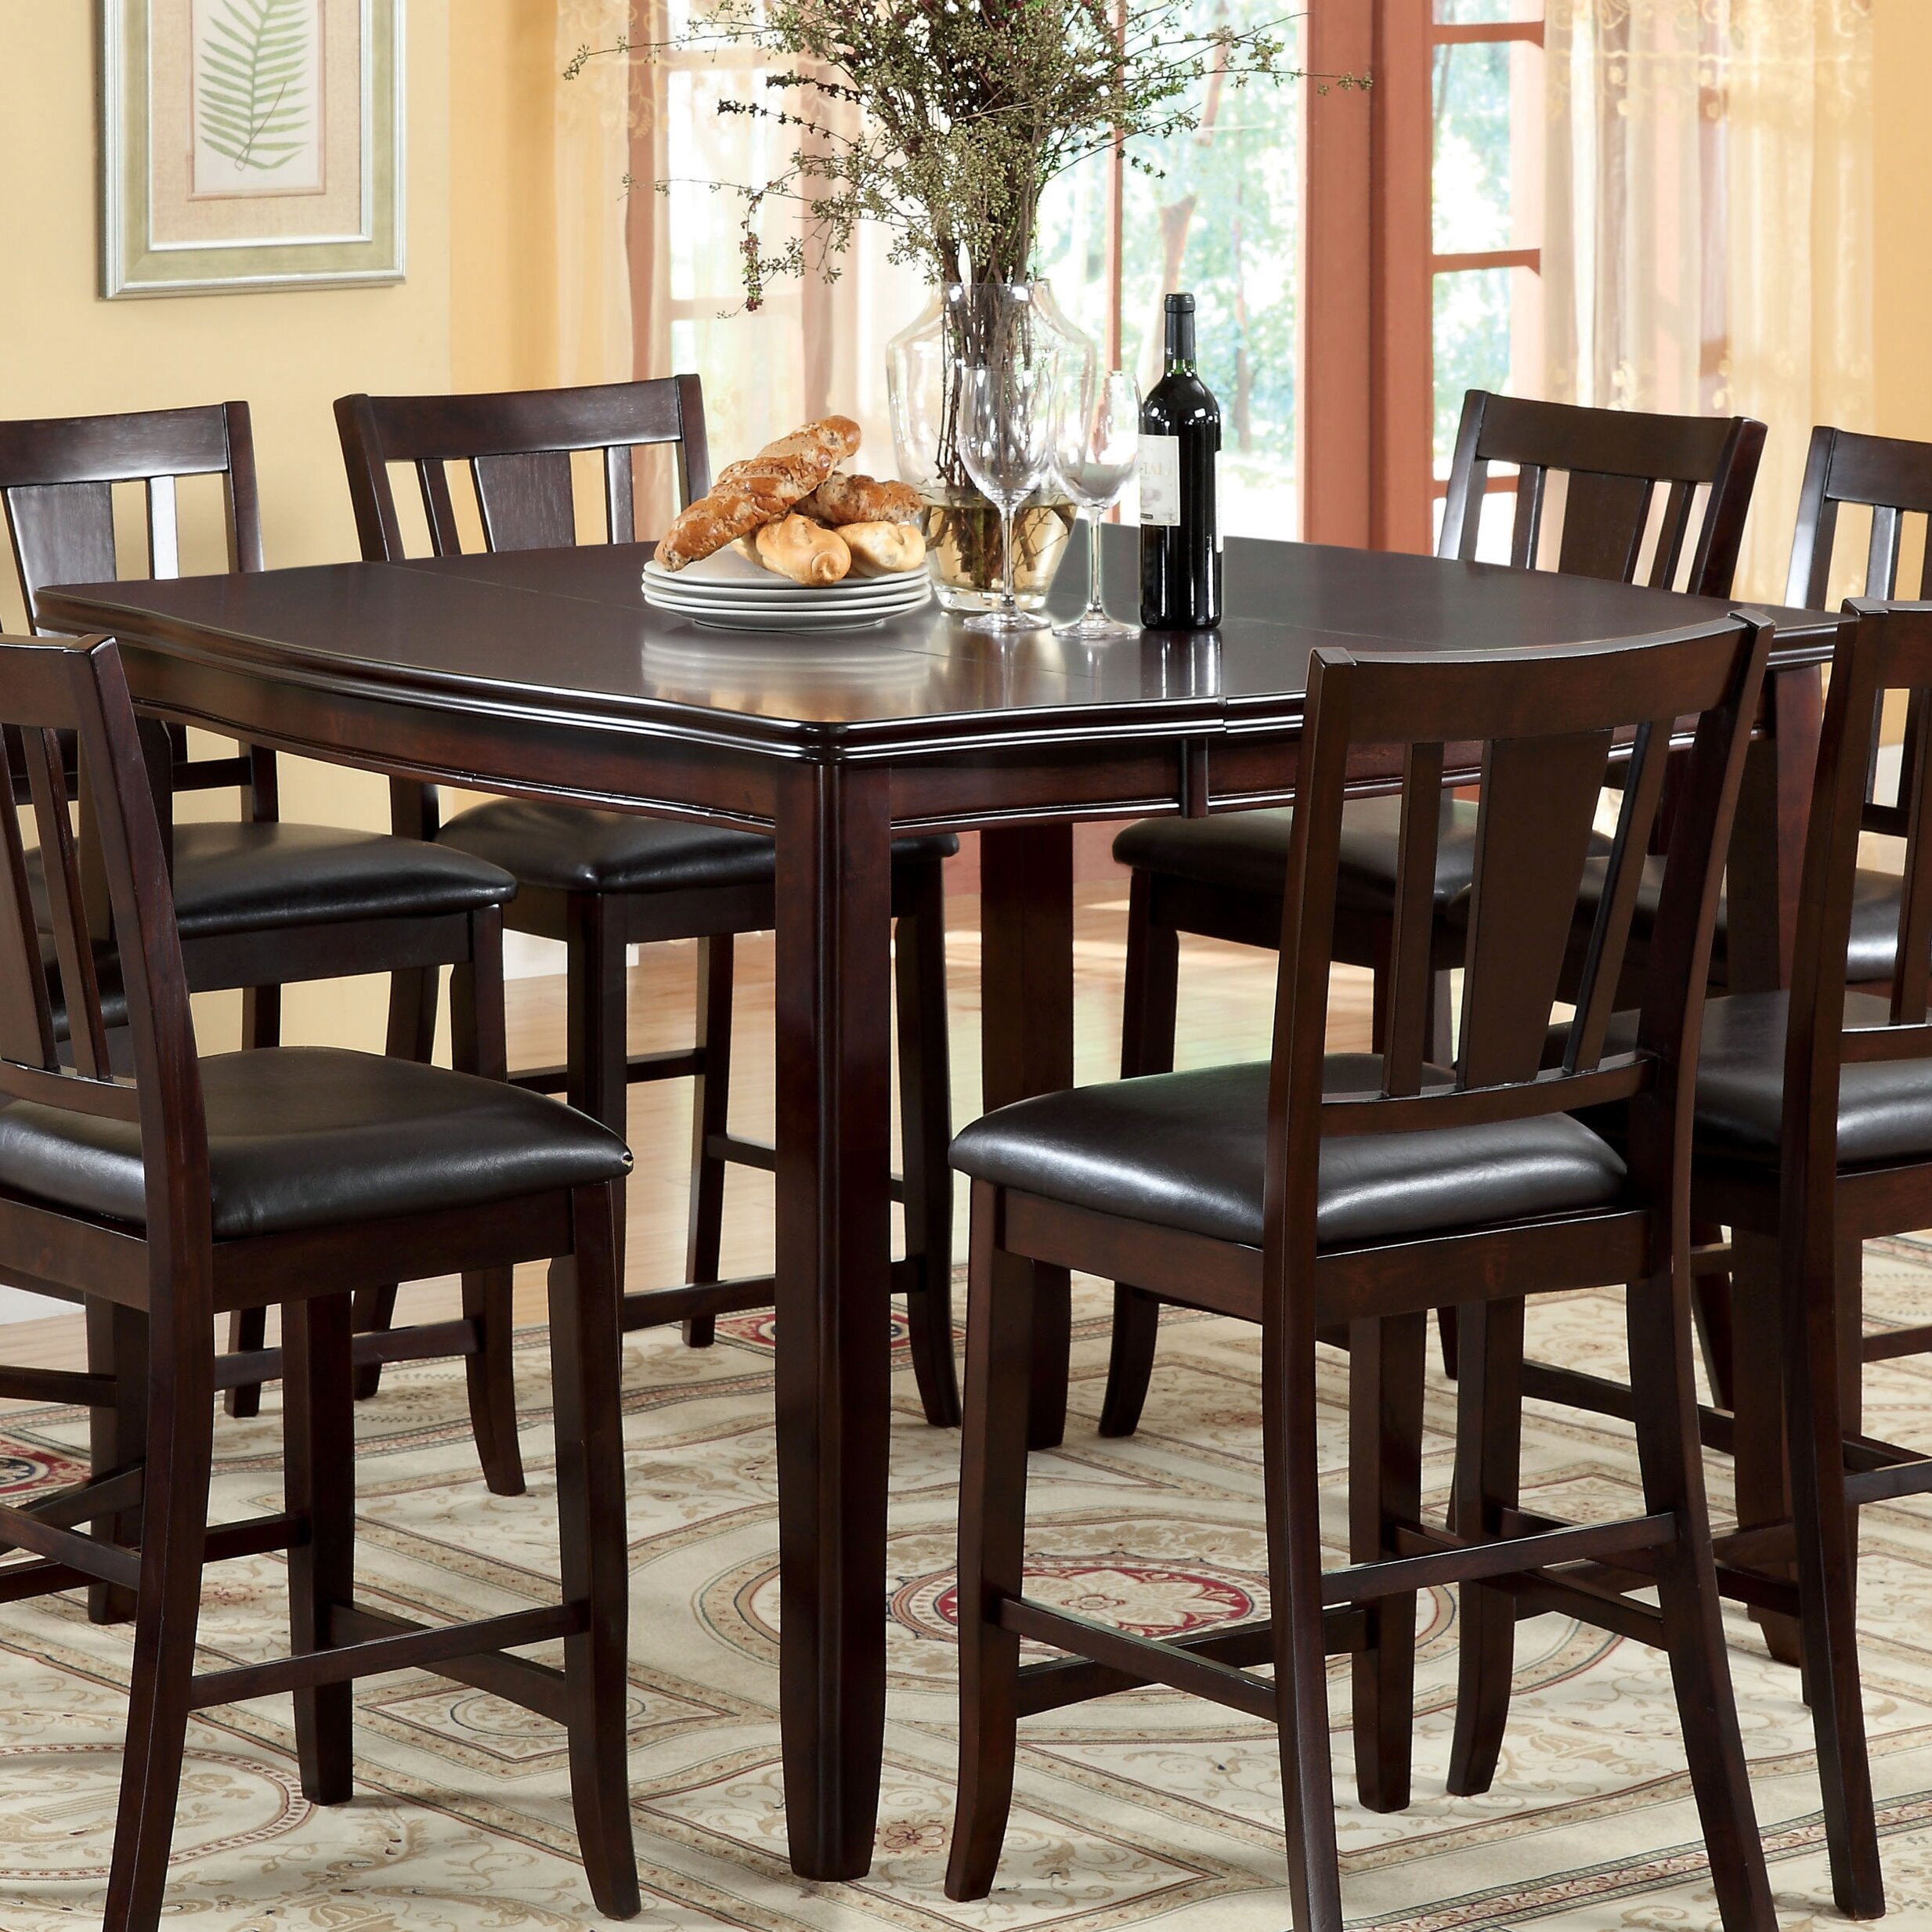 Dinning Set: Hokku Designs Nappa 7 Piece Counter Height Dining Set